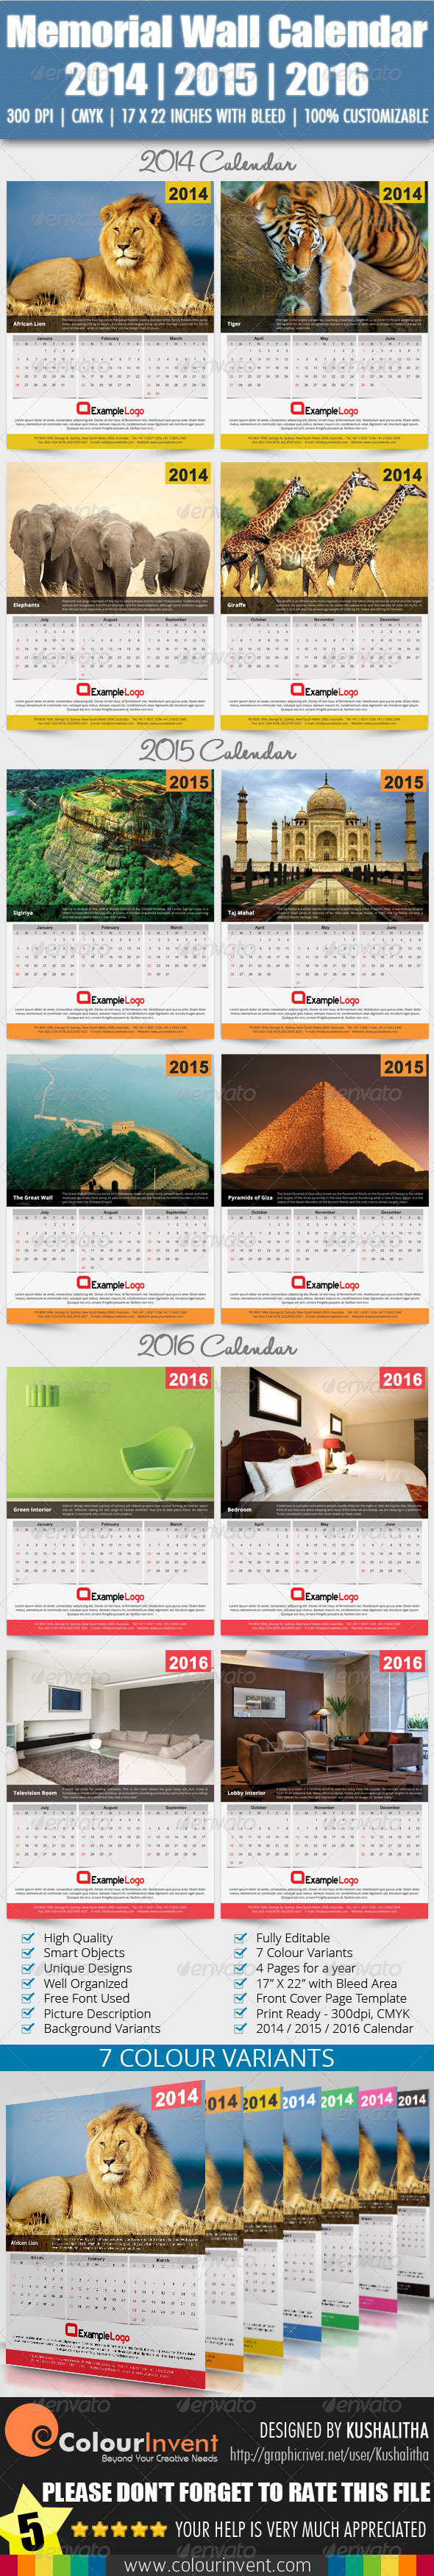 GraphicRiver Memorial Wall Calendar 2014 2015 2016 6057883